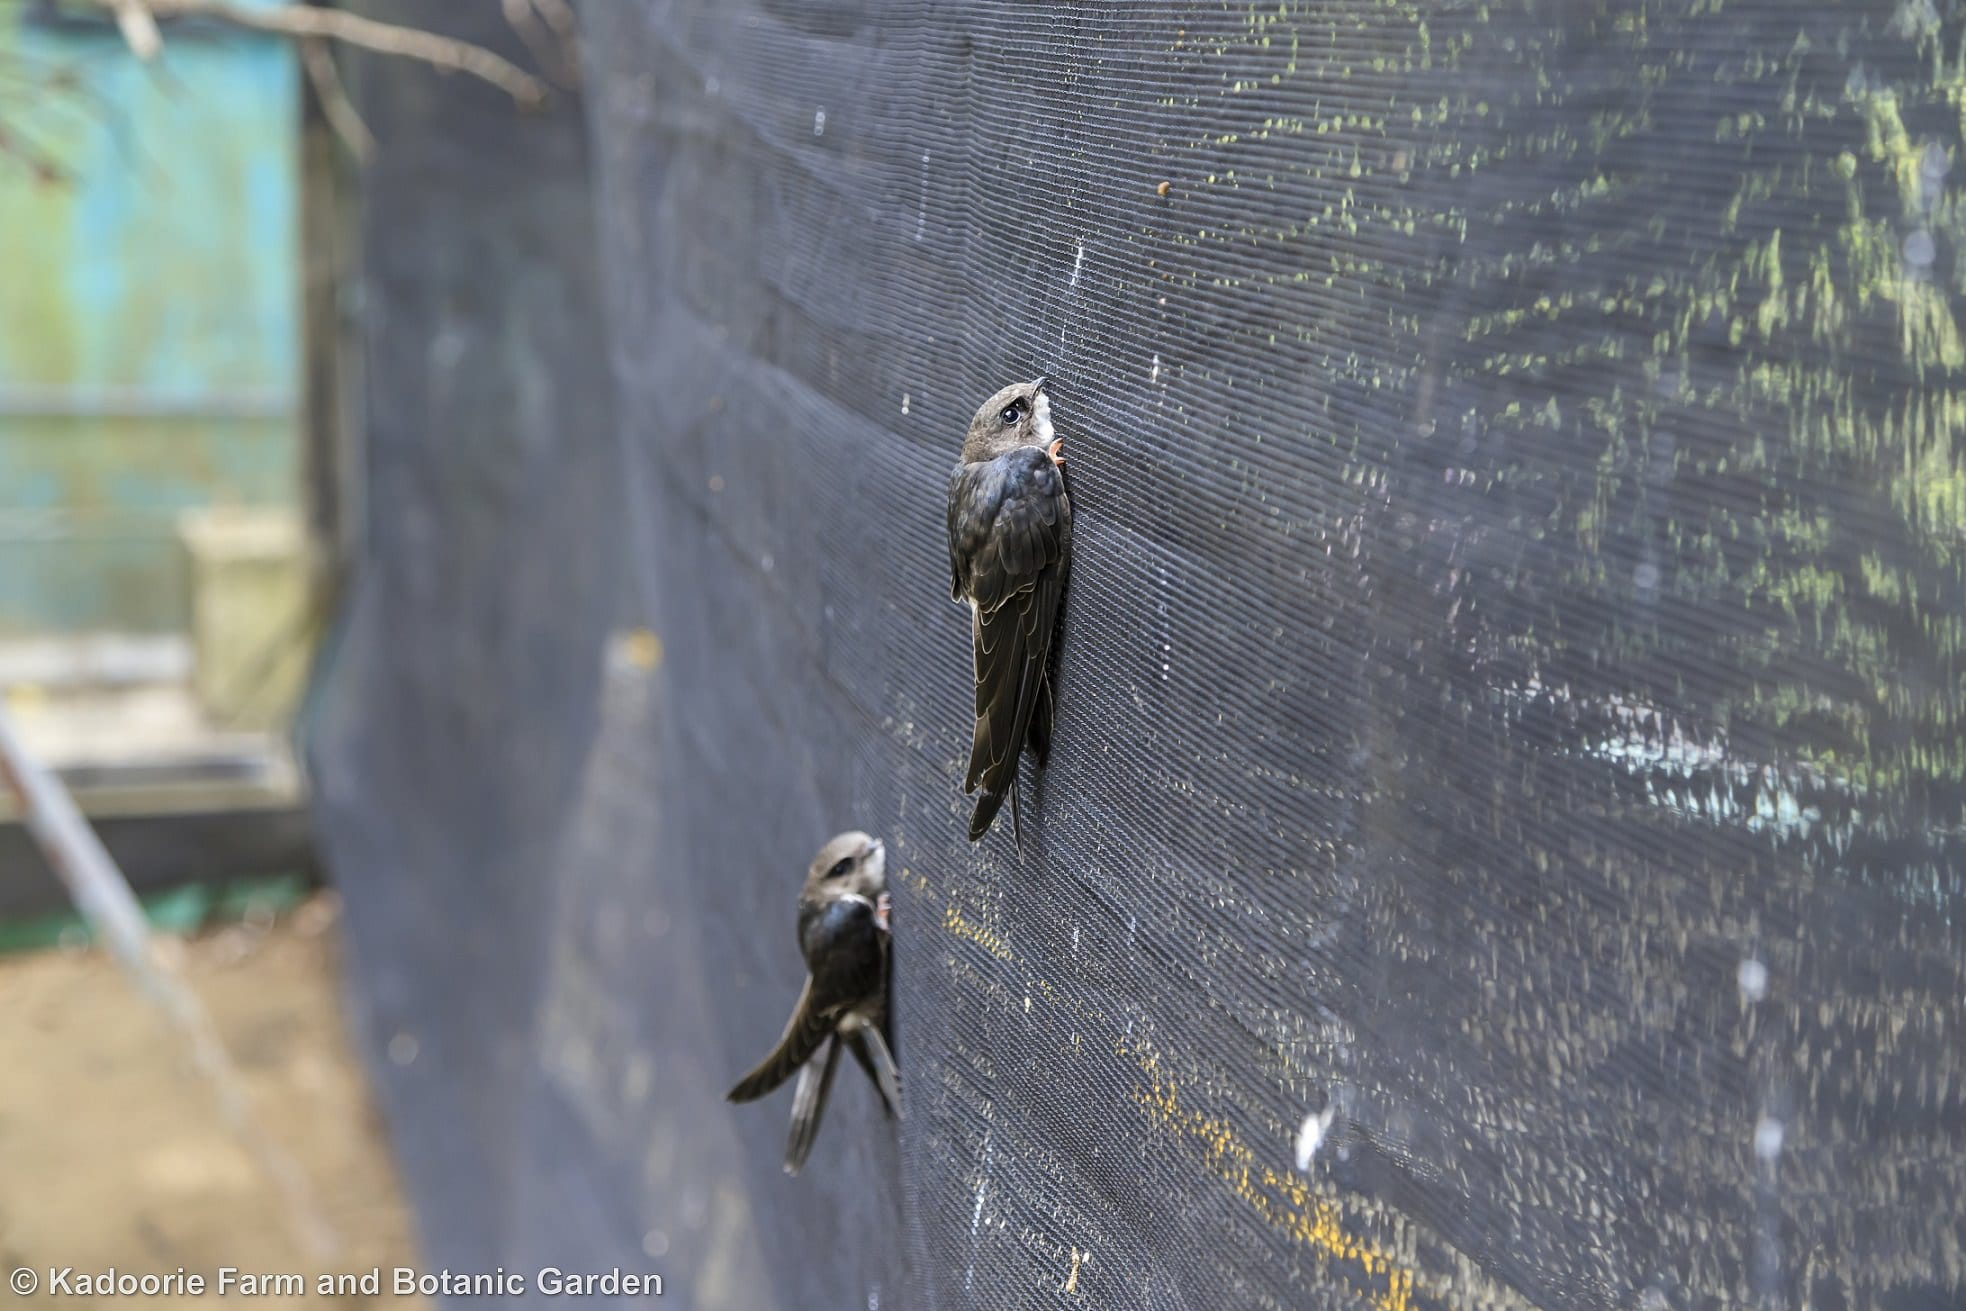 Some species of birds such as house swifts (Apus nipalensis) have special foraging methods and do not eat from a dish. These species of birds need to be hand fed carefully by trained animal keepers during rehabilitation and on release they are place vertically as in the photograph so that they are able to take flight easier (Photo credit: Walter Ma)